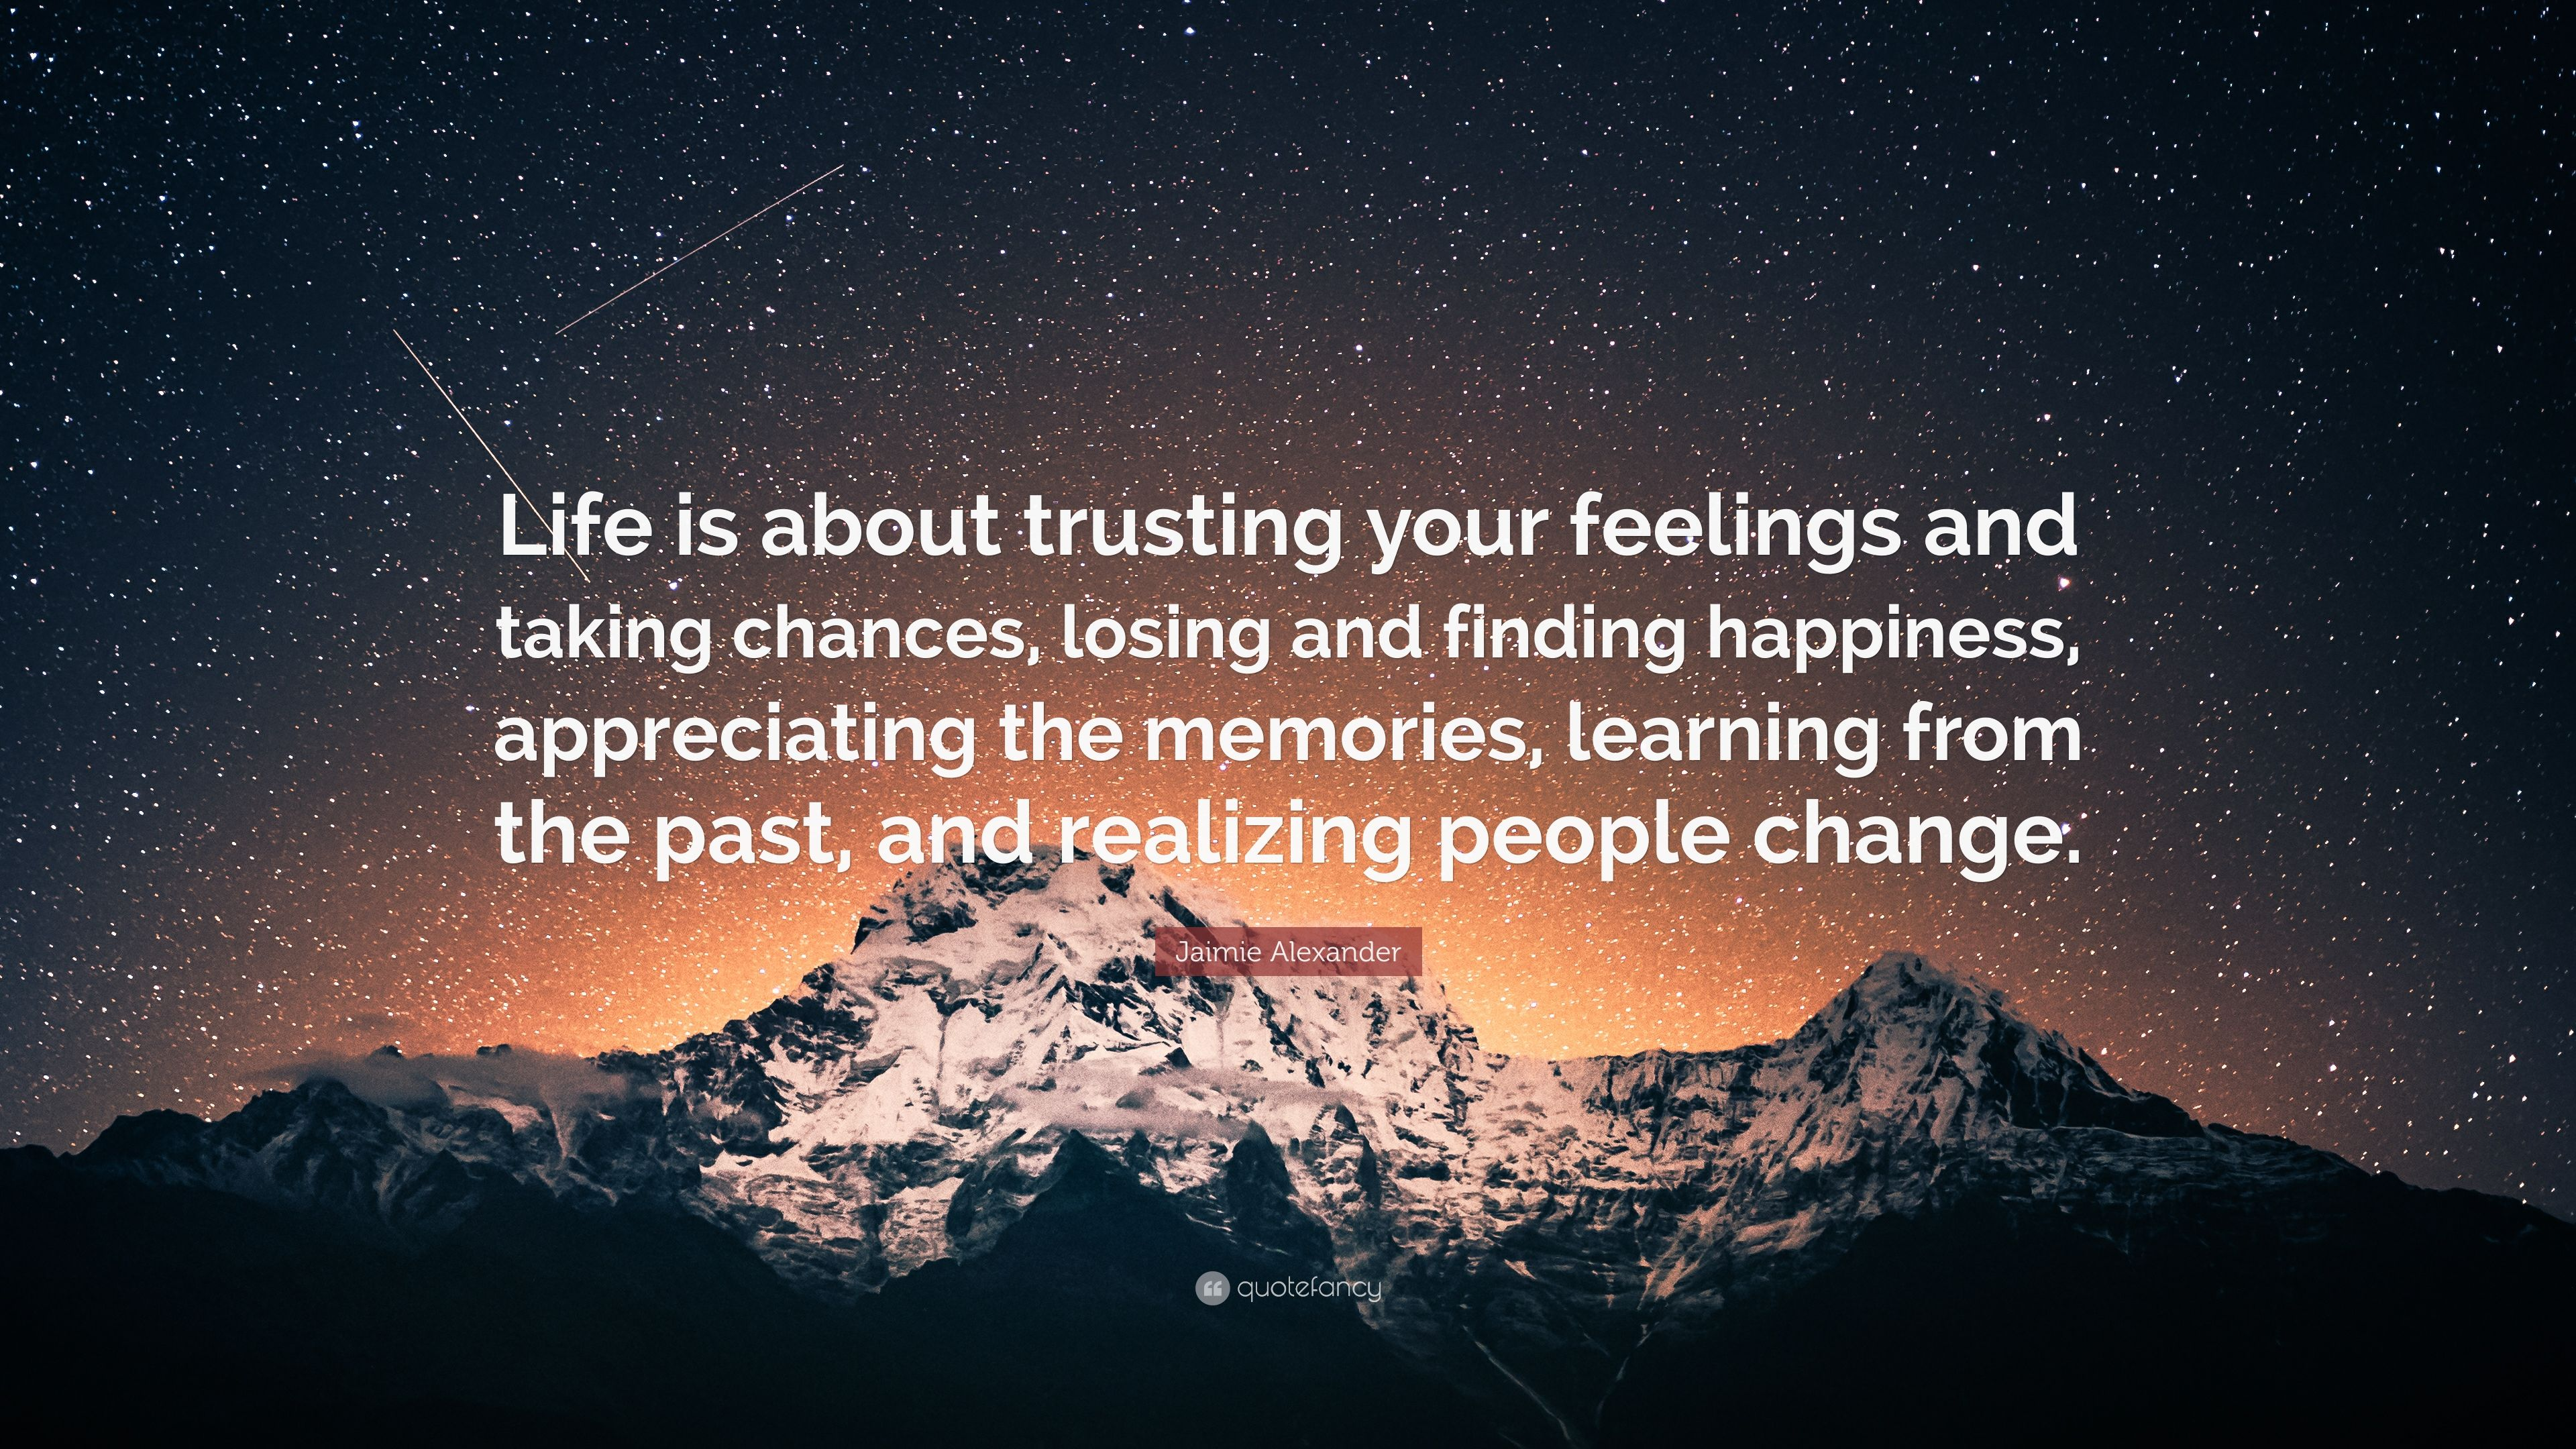 High Quality Jaimie Alexander Quote: U201cLife Is About Trusting Your Feelings And Taking  Chances, Losing